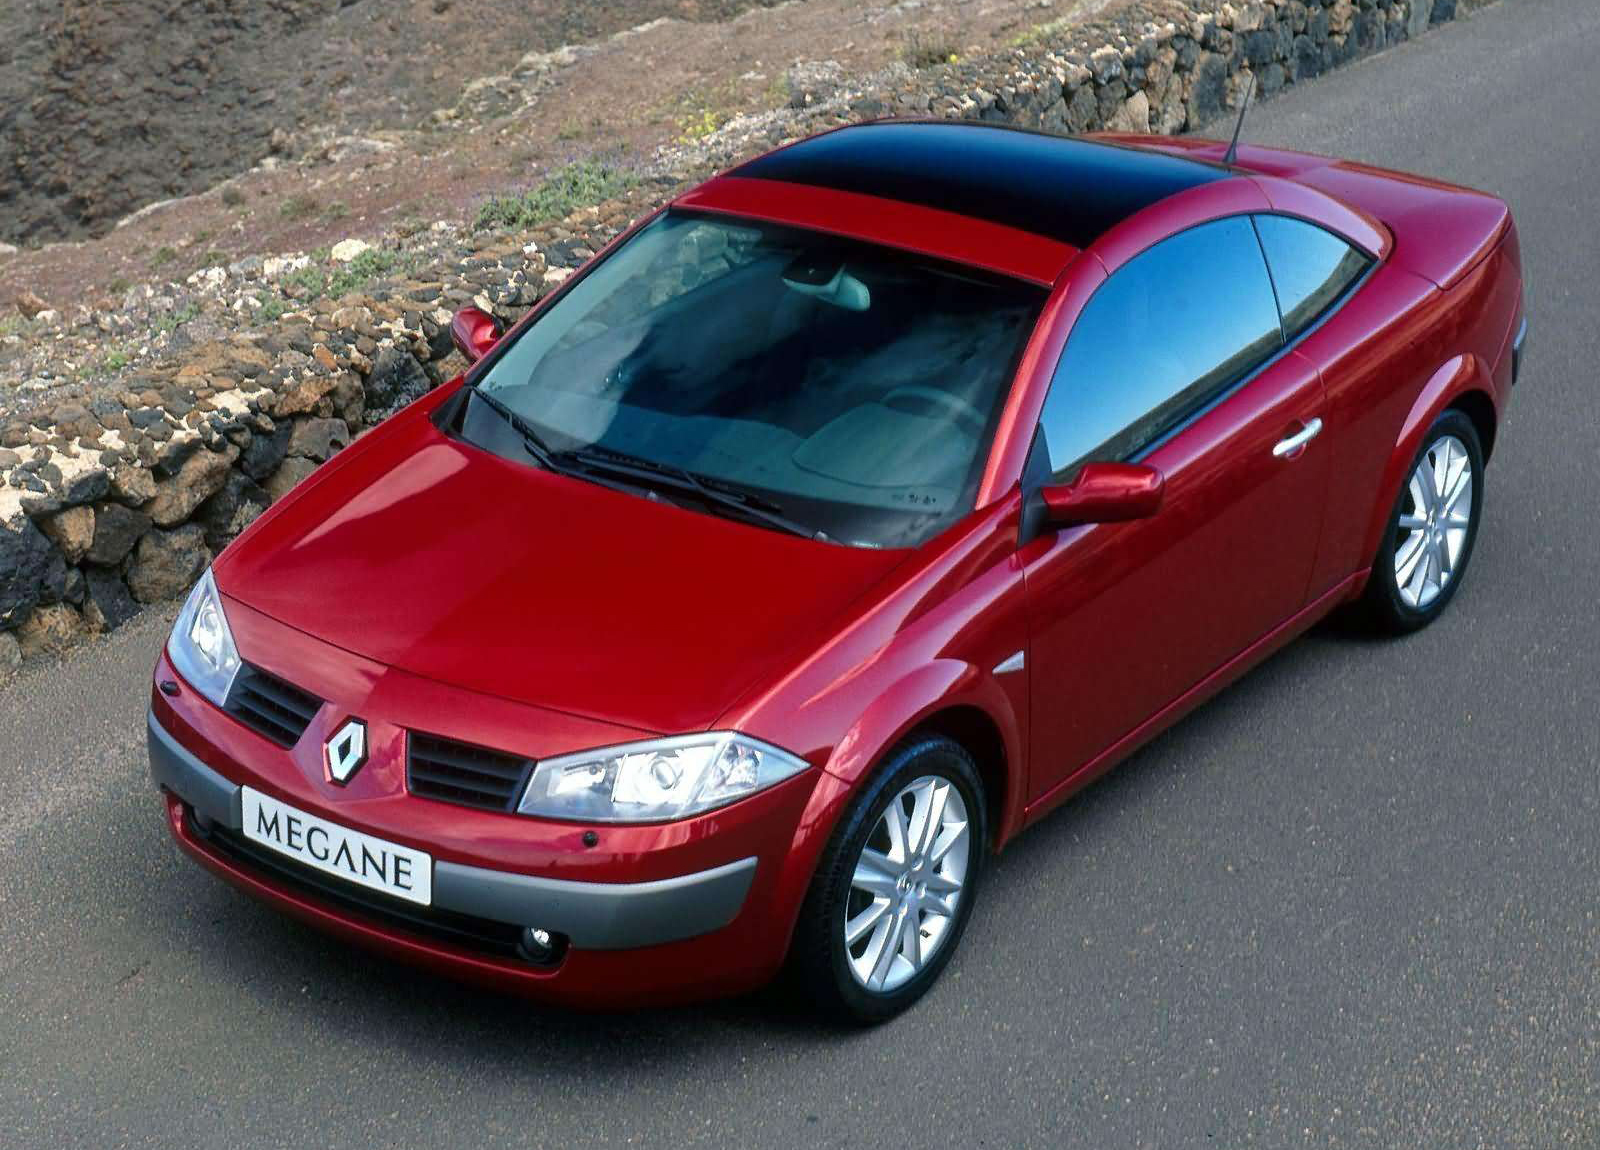 2003 Renault Megane Ii Coupecabriolet 2 0 Dynmaique